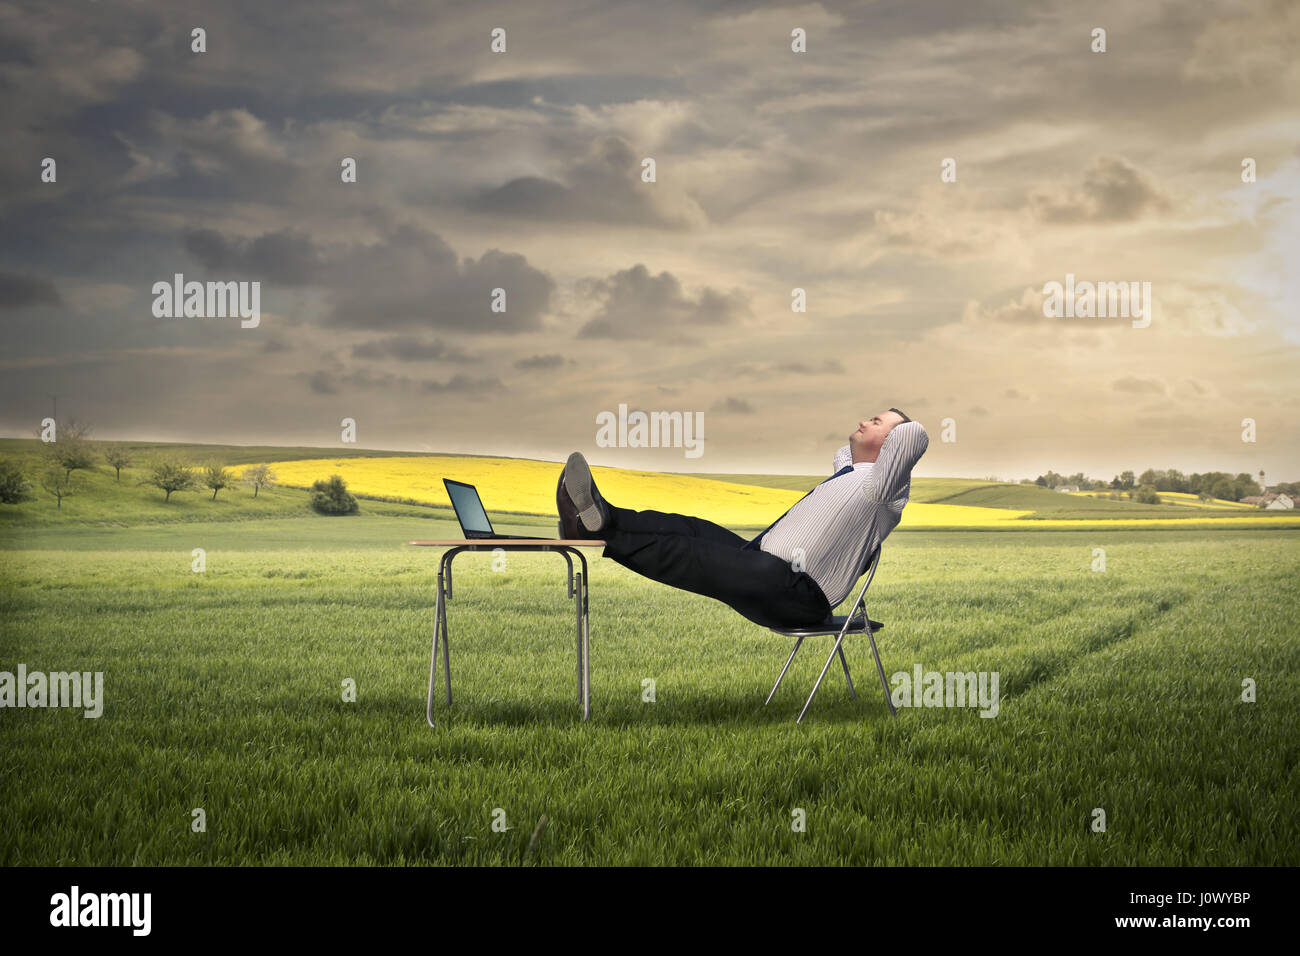 Businessman relaying on field - Stock Image